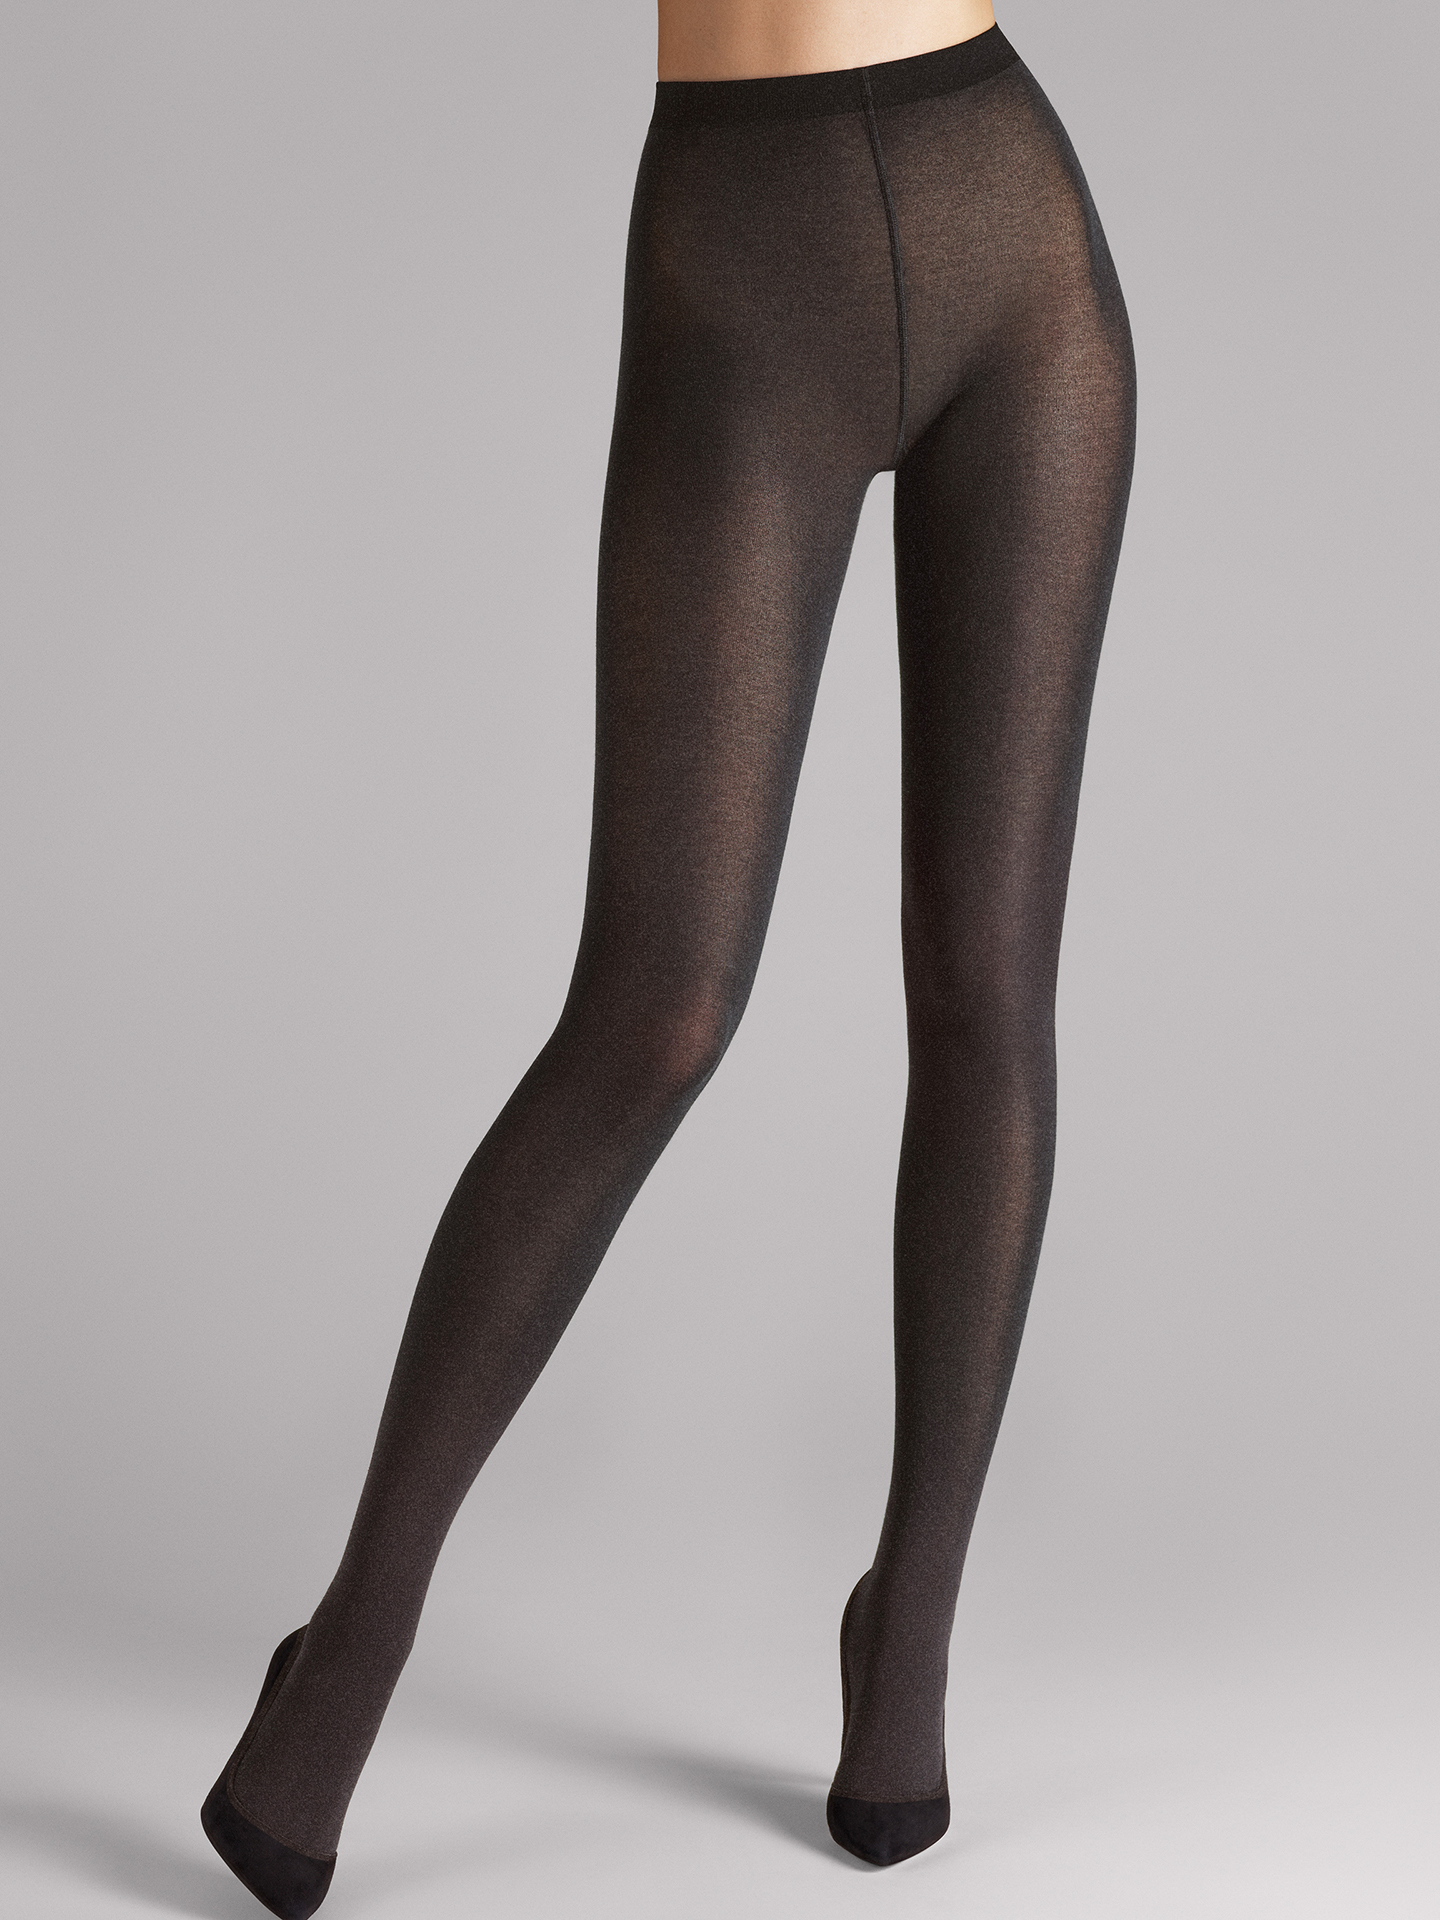 Wolford Apparel & Accessories > Clothing > Collant Cotton Velvet - 9274 - M